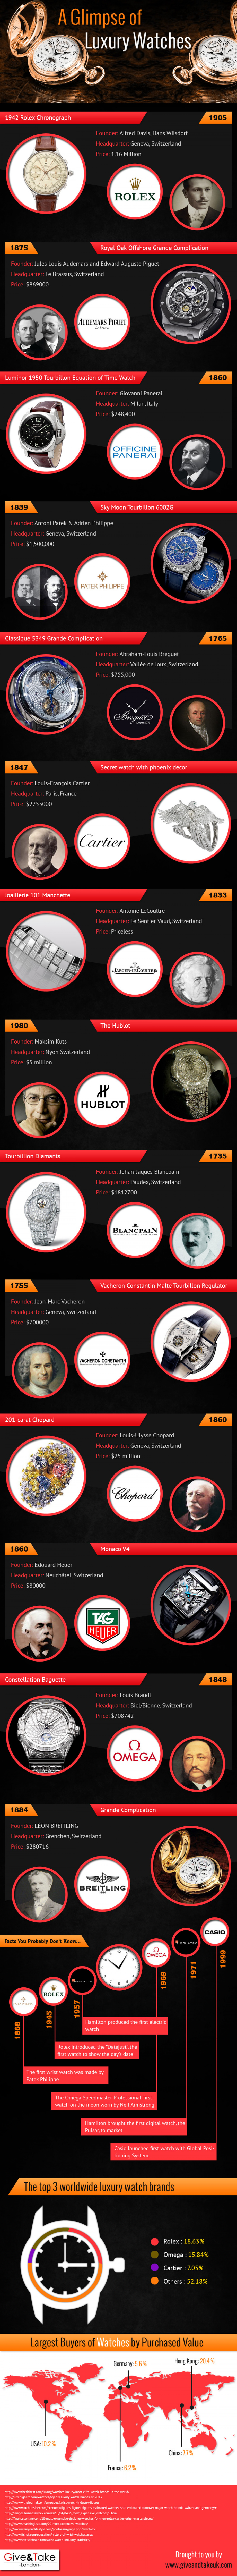 A Glimpse of Luxury Watches  Infographic